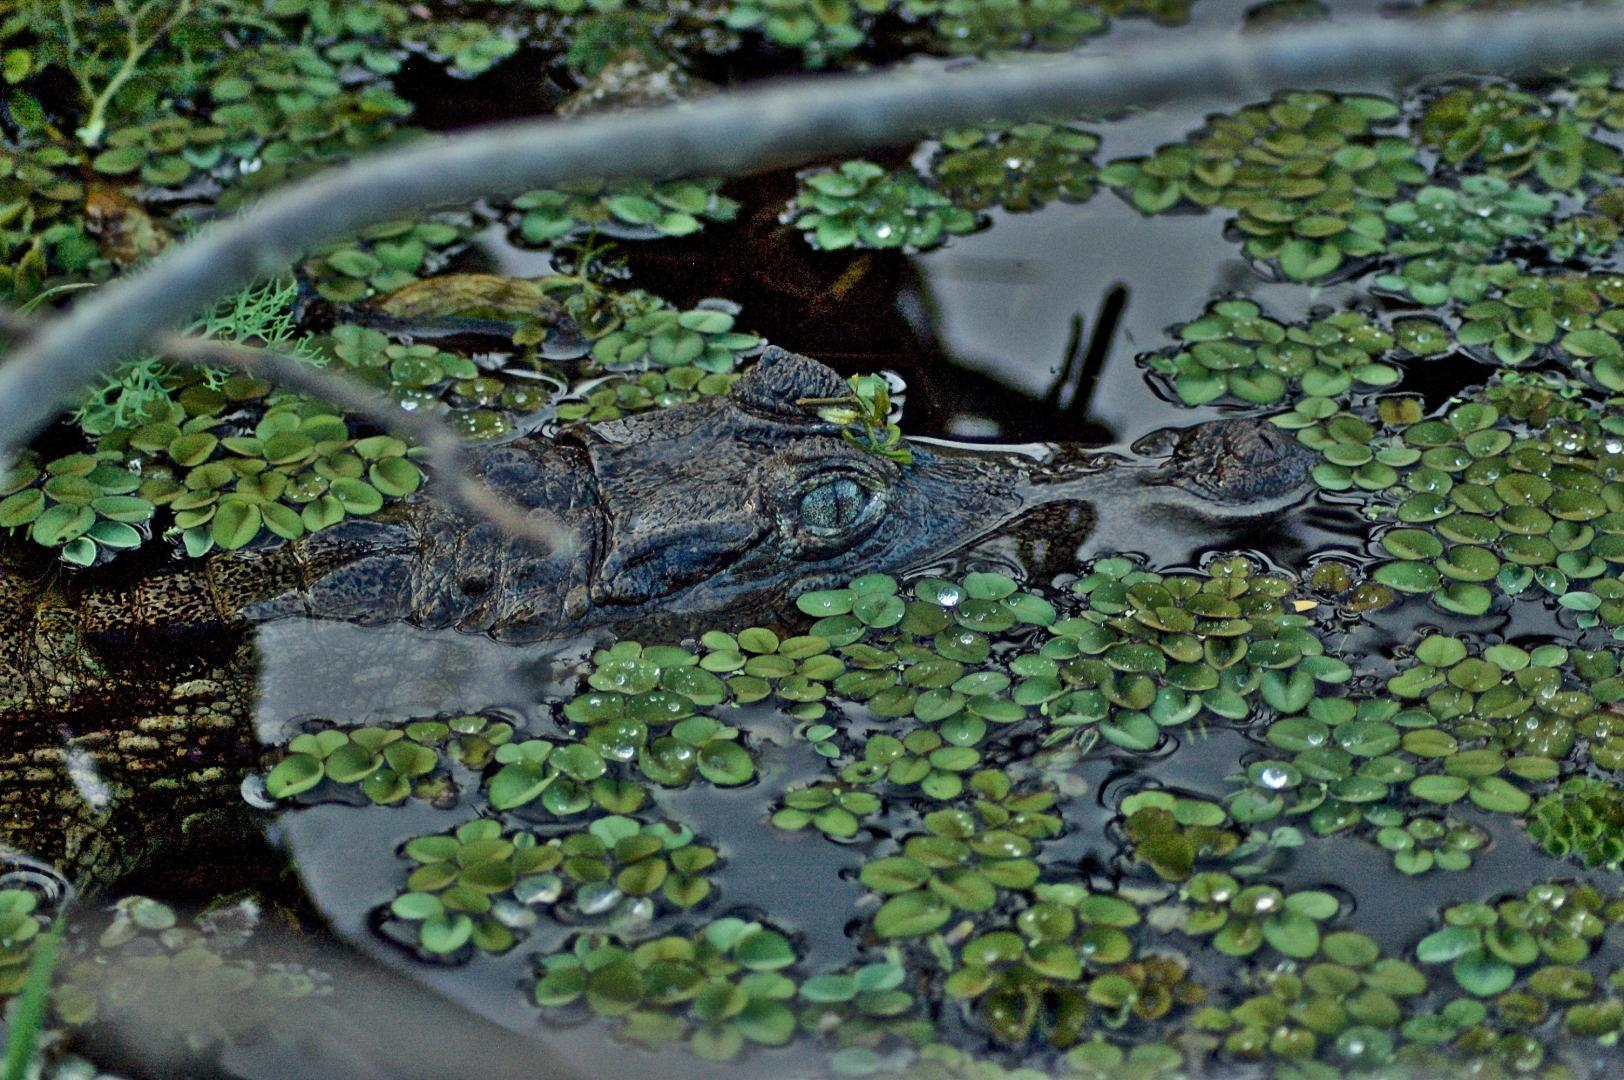 Black caiman in the Heart of the Amazon © Dave Foreman